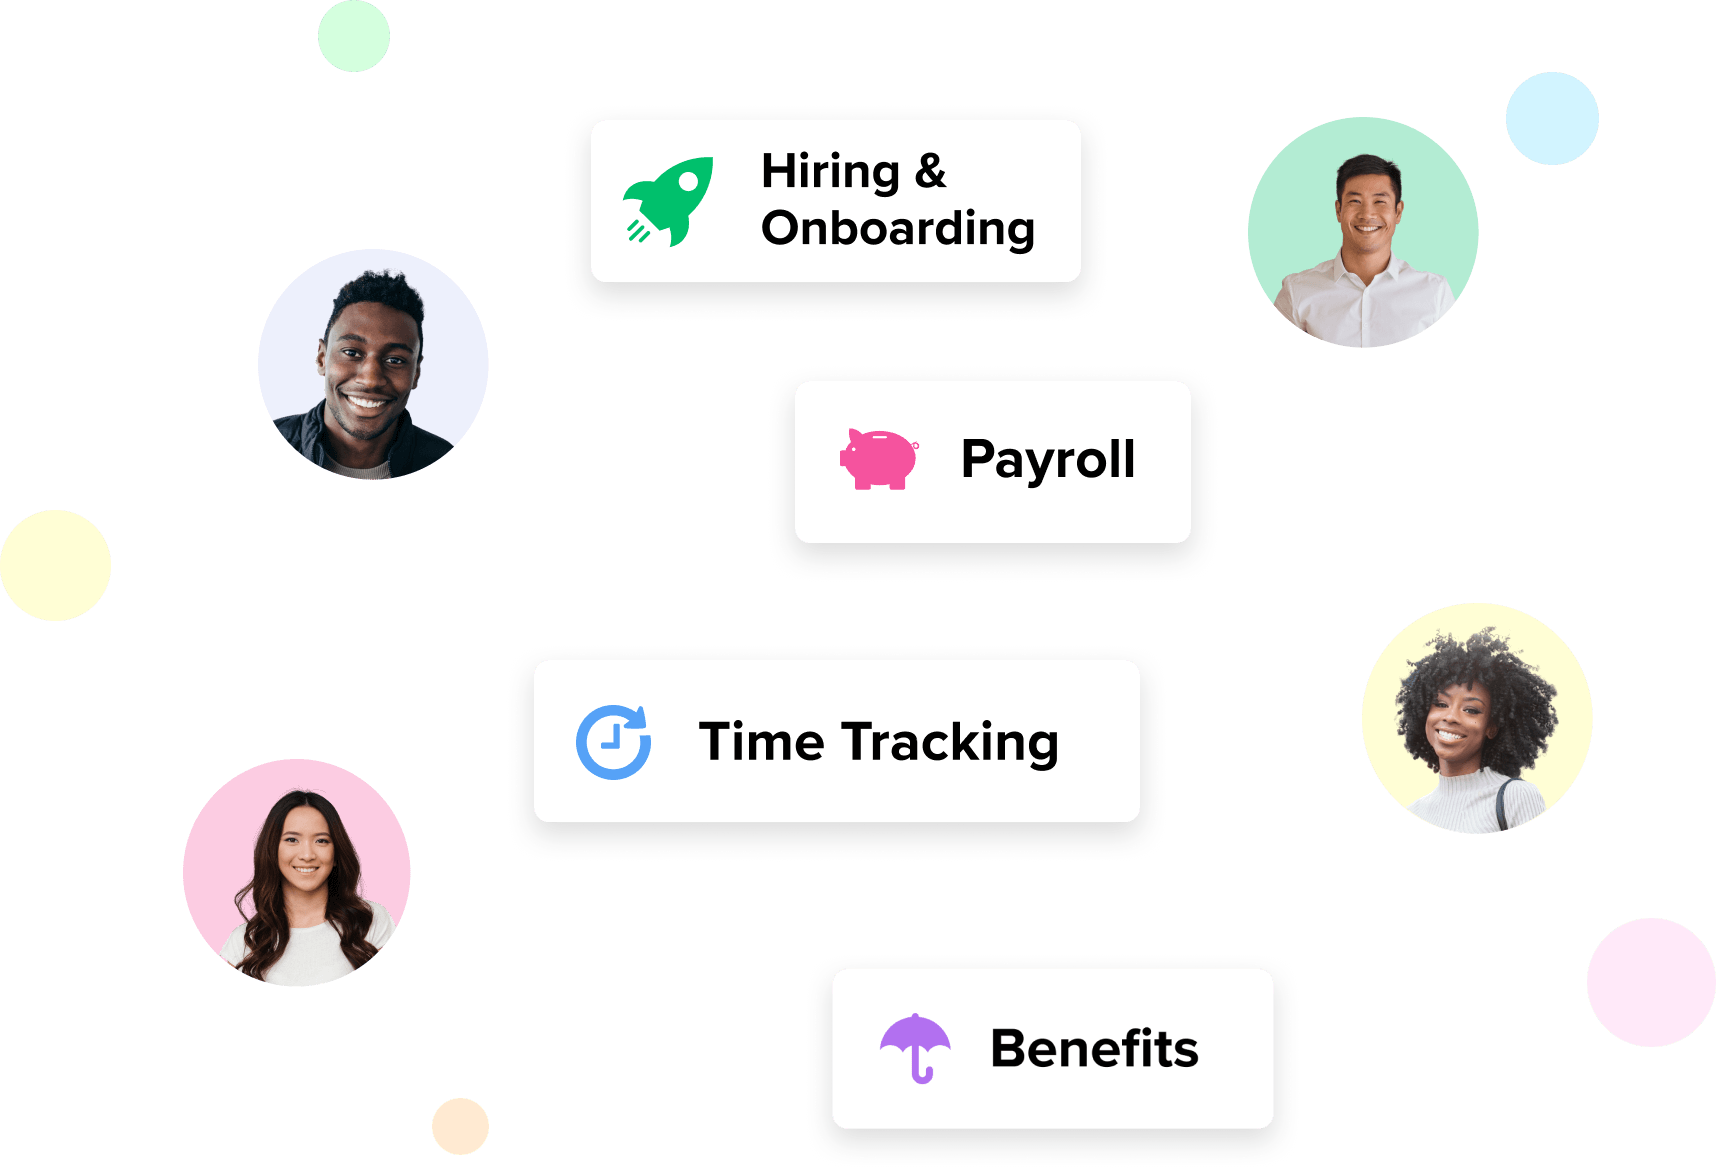 Onboard & Empower New Hires